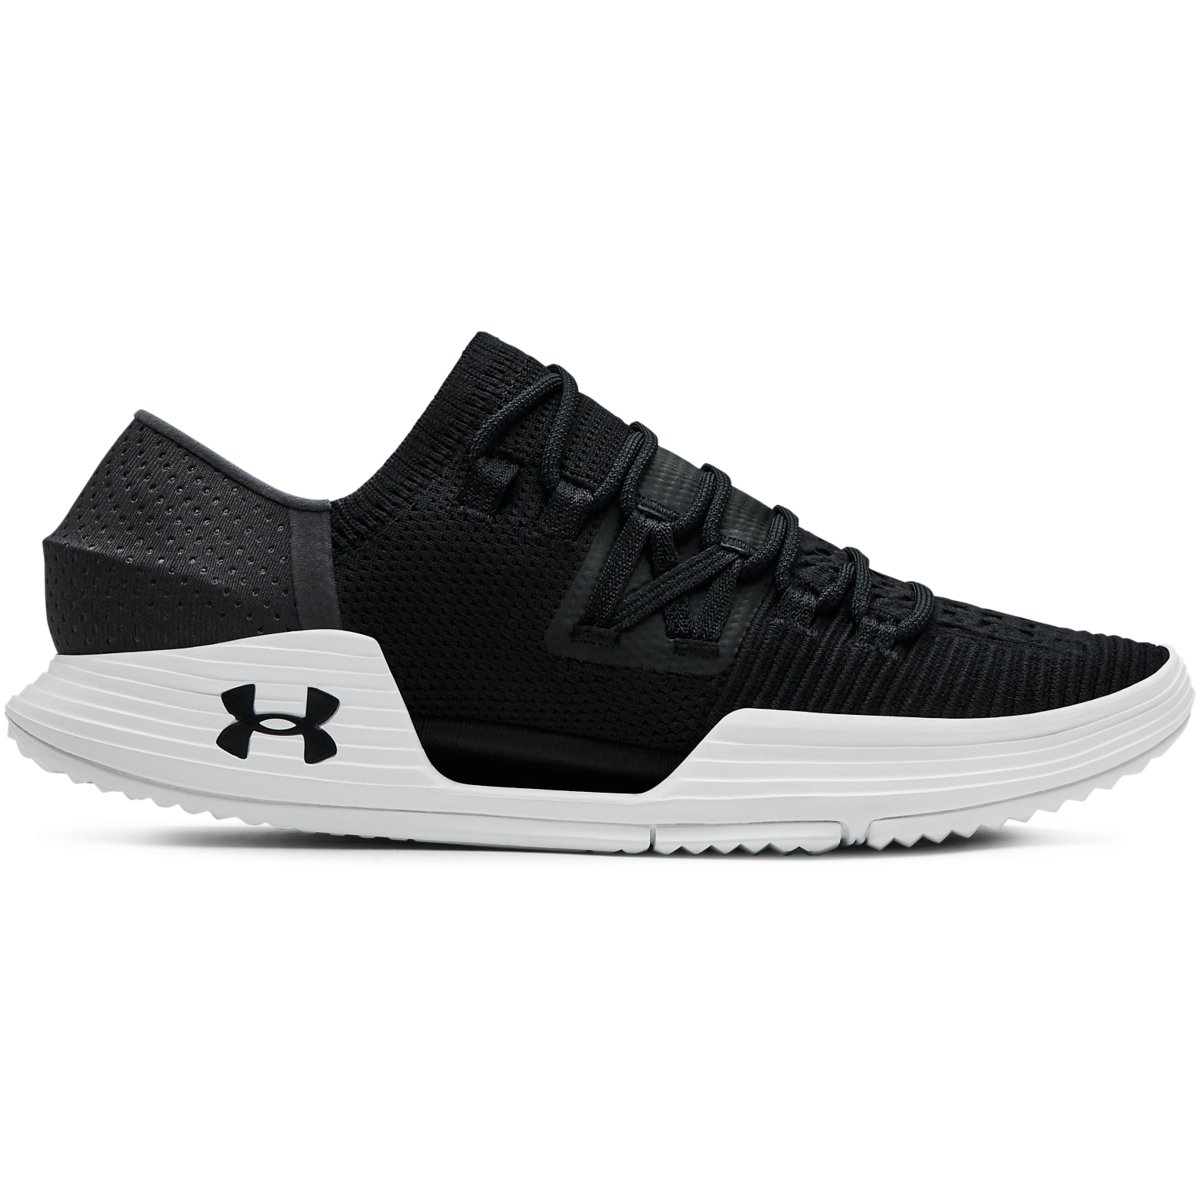 Under Armour Speedform AMP 3.0-BLK Black 46